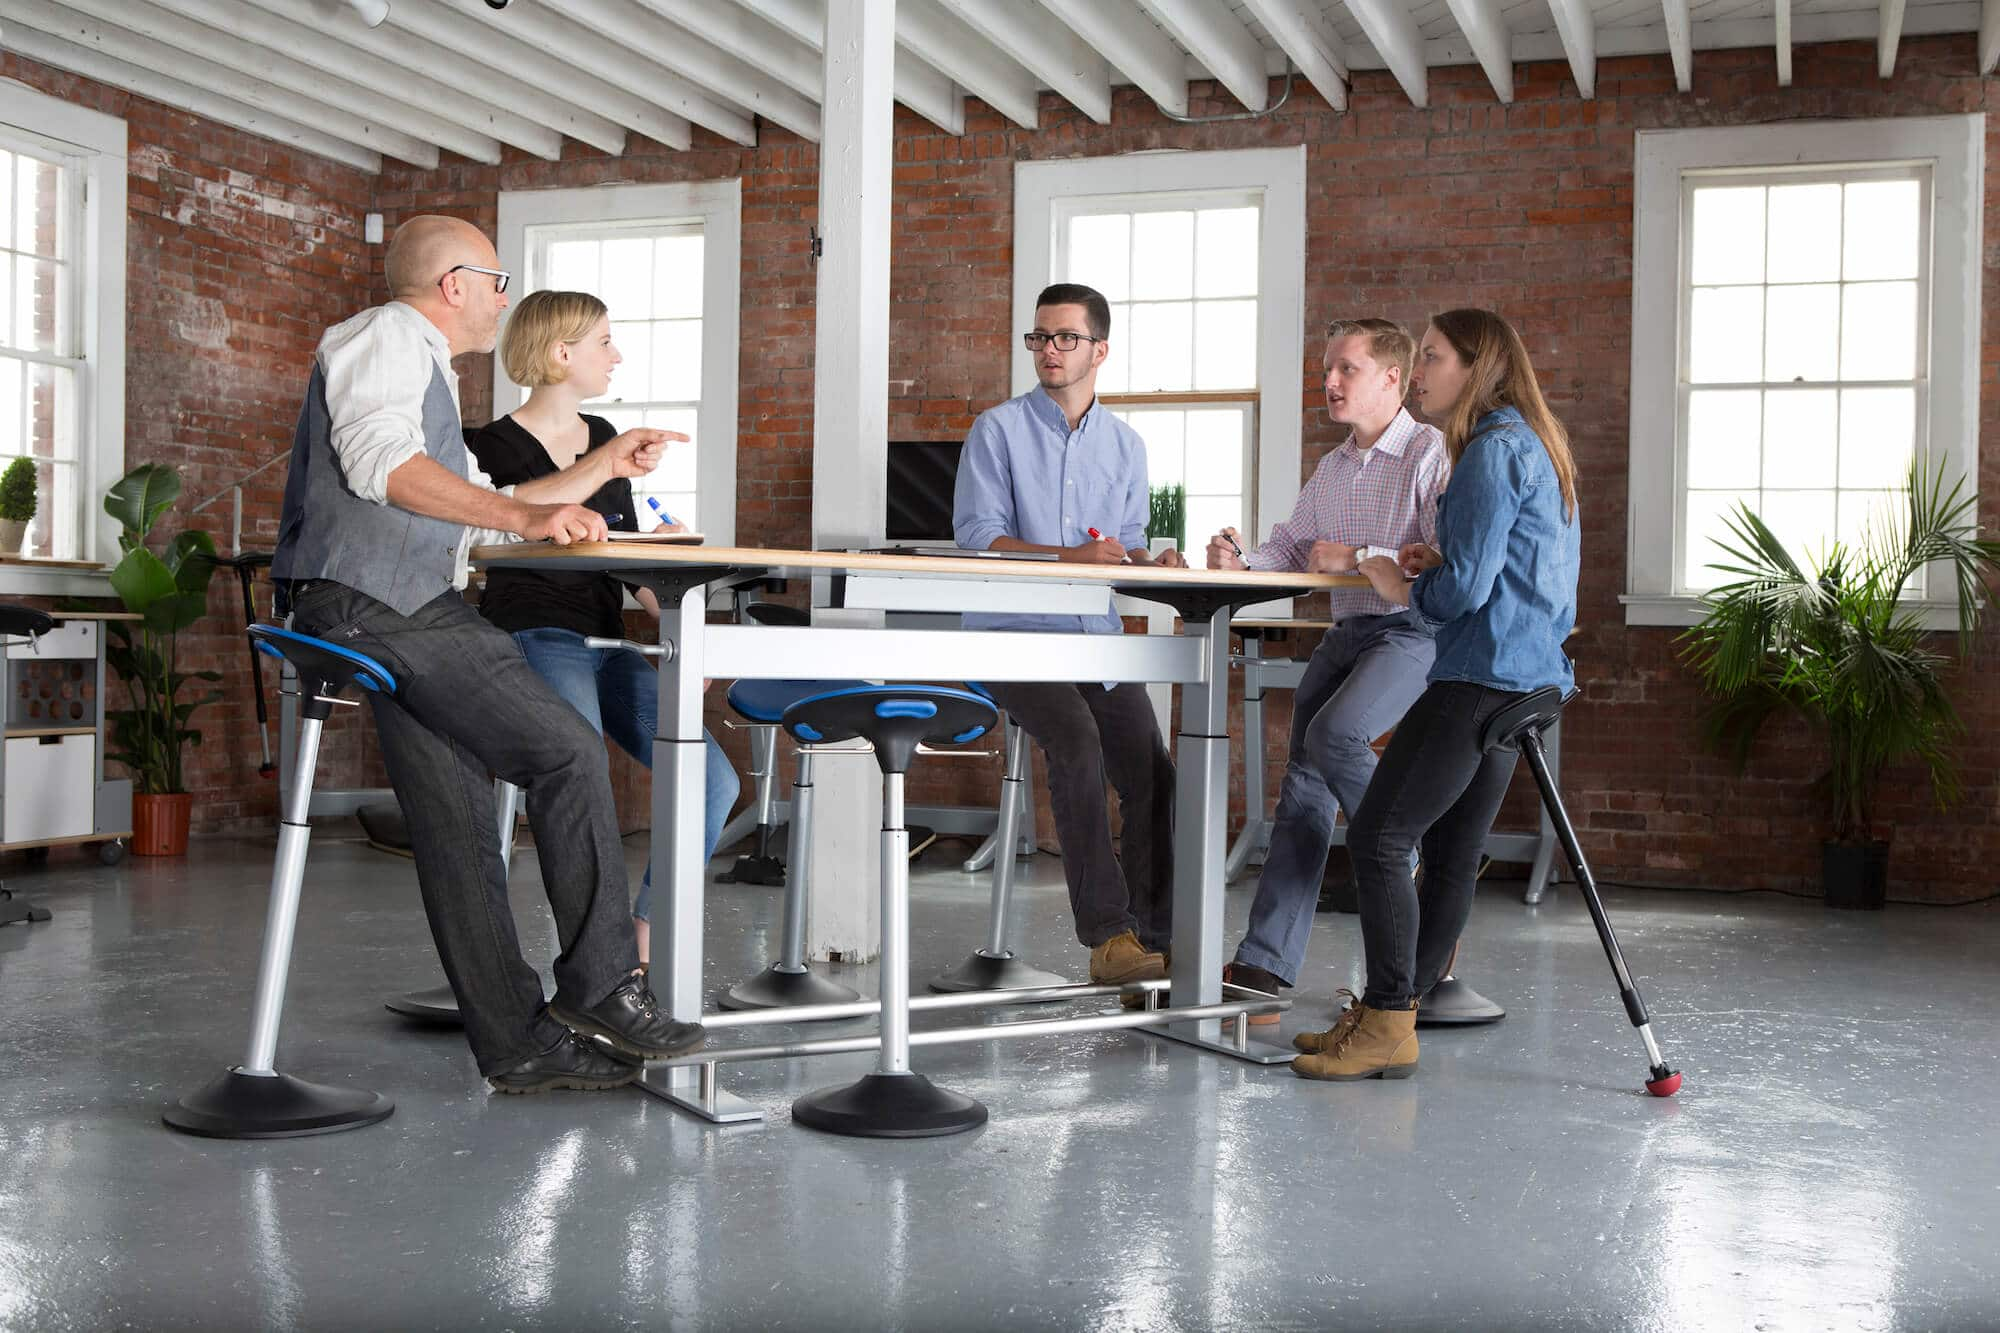 leaning seat at conference table in brick hipster office setting